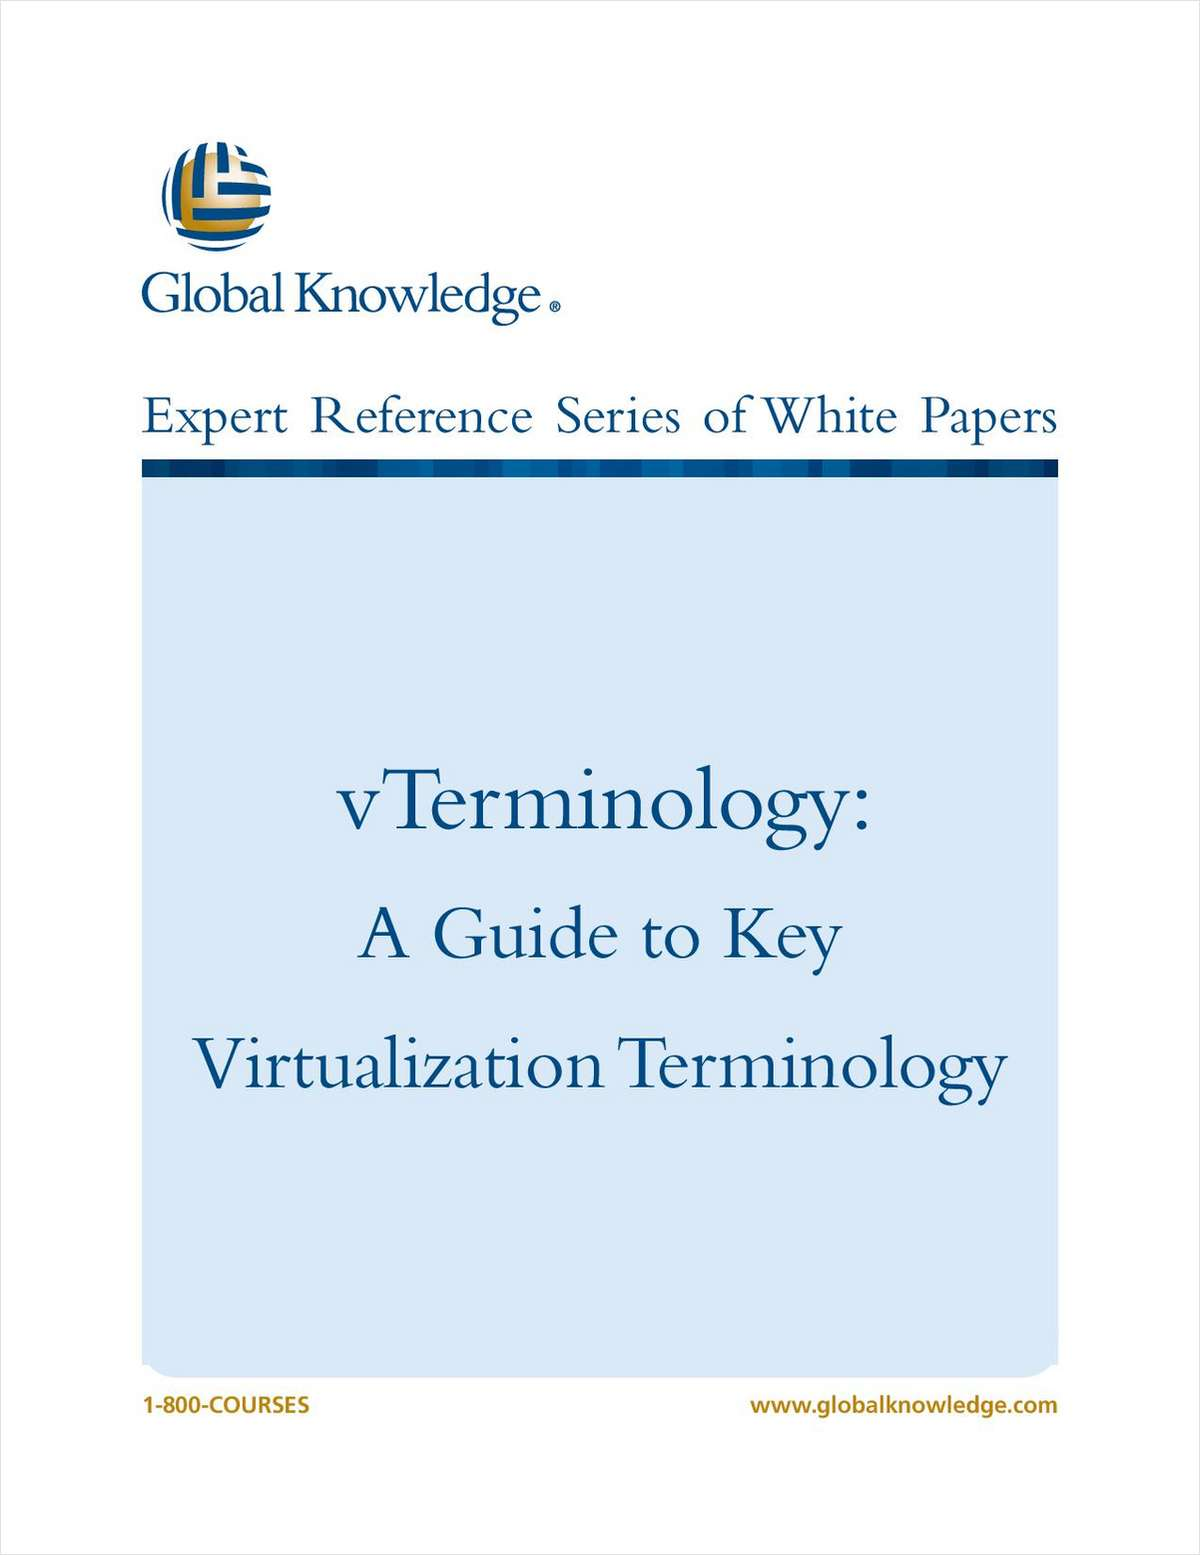 vTerminolgy: A Guide to Key Virtualization Terminology